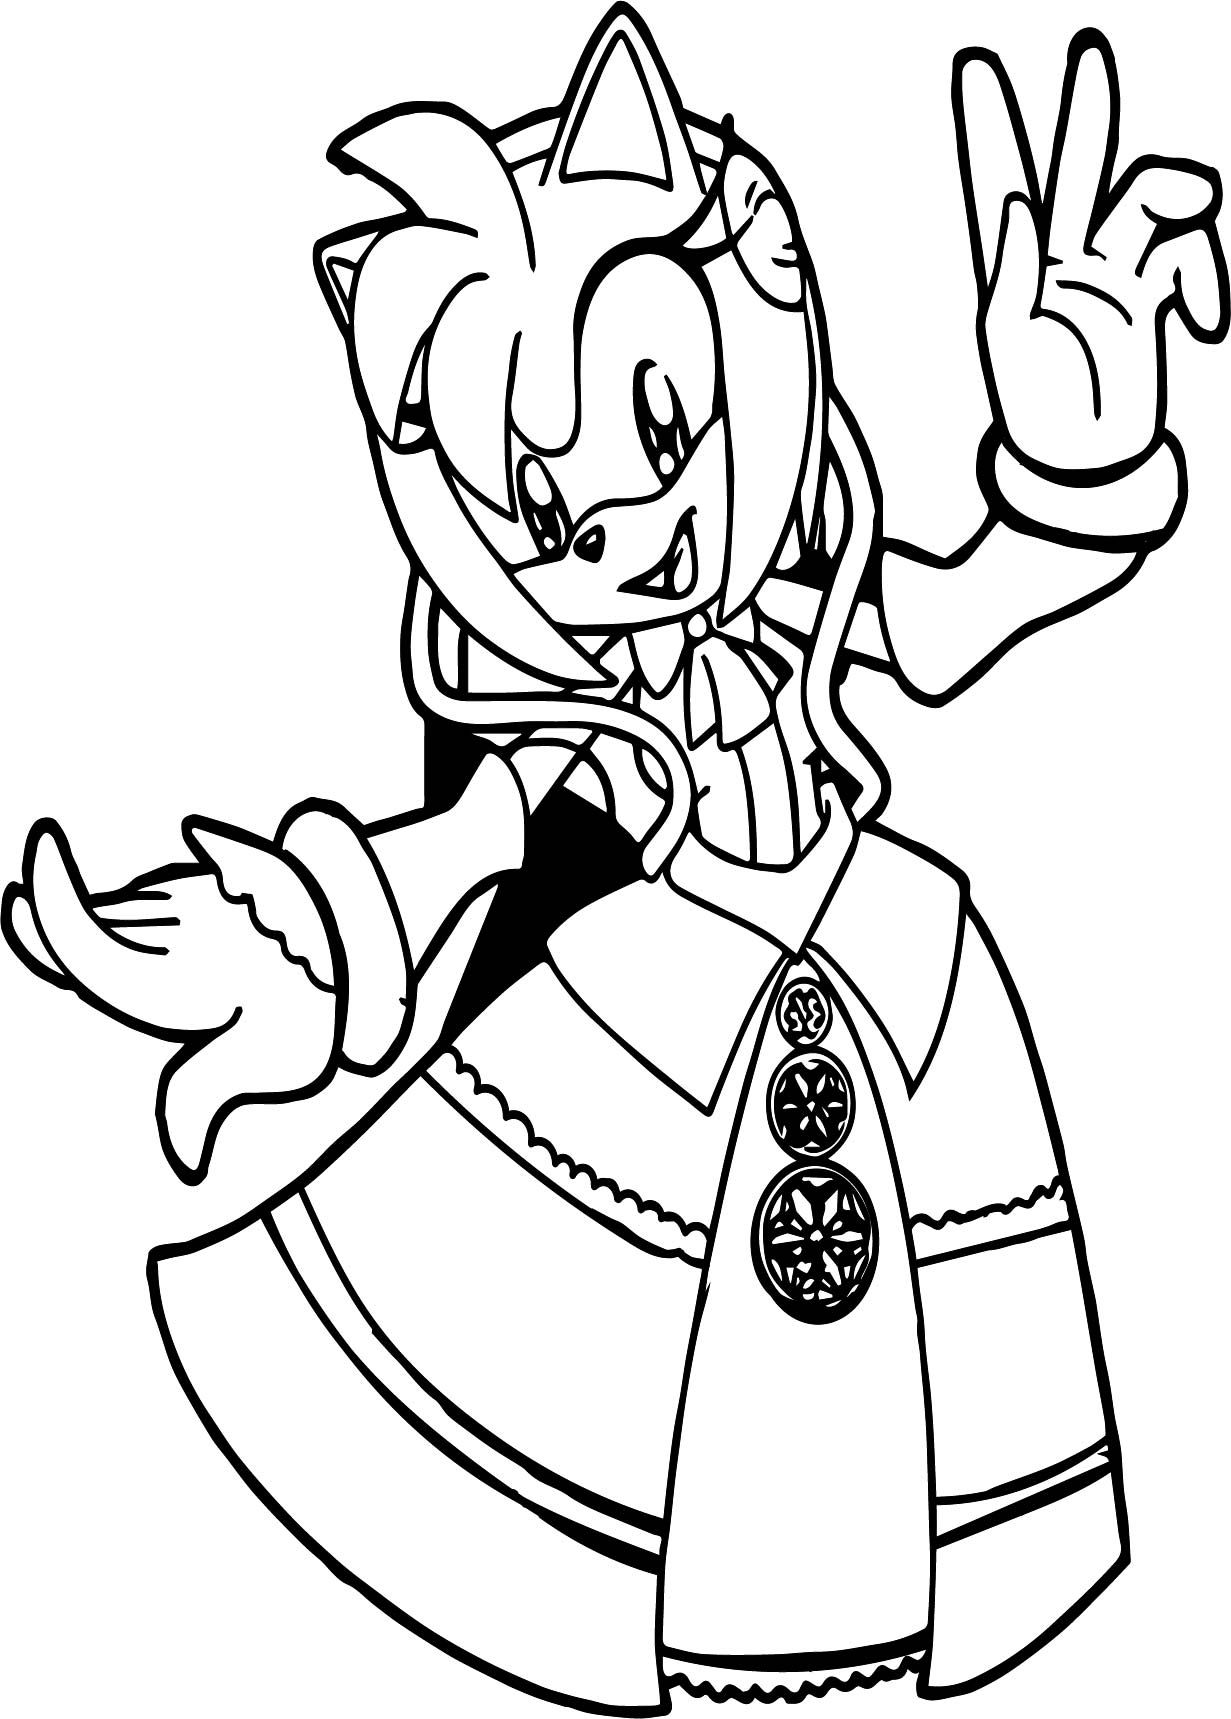 amy coloring pages - photo#27